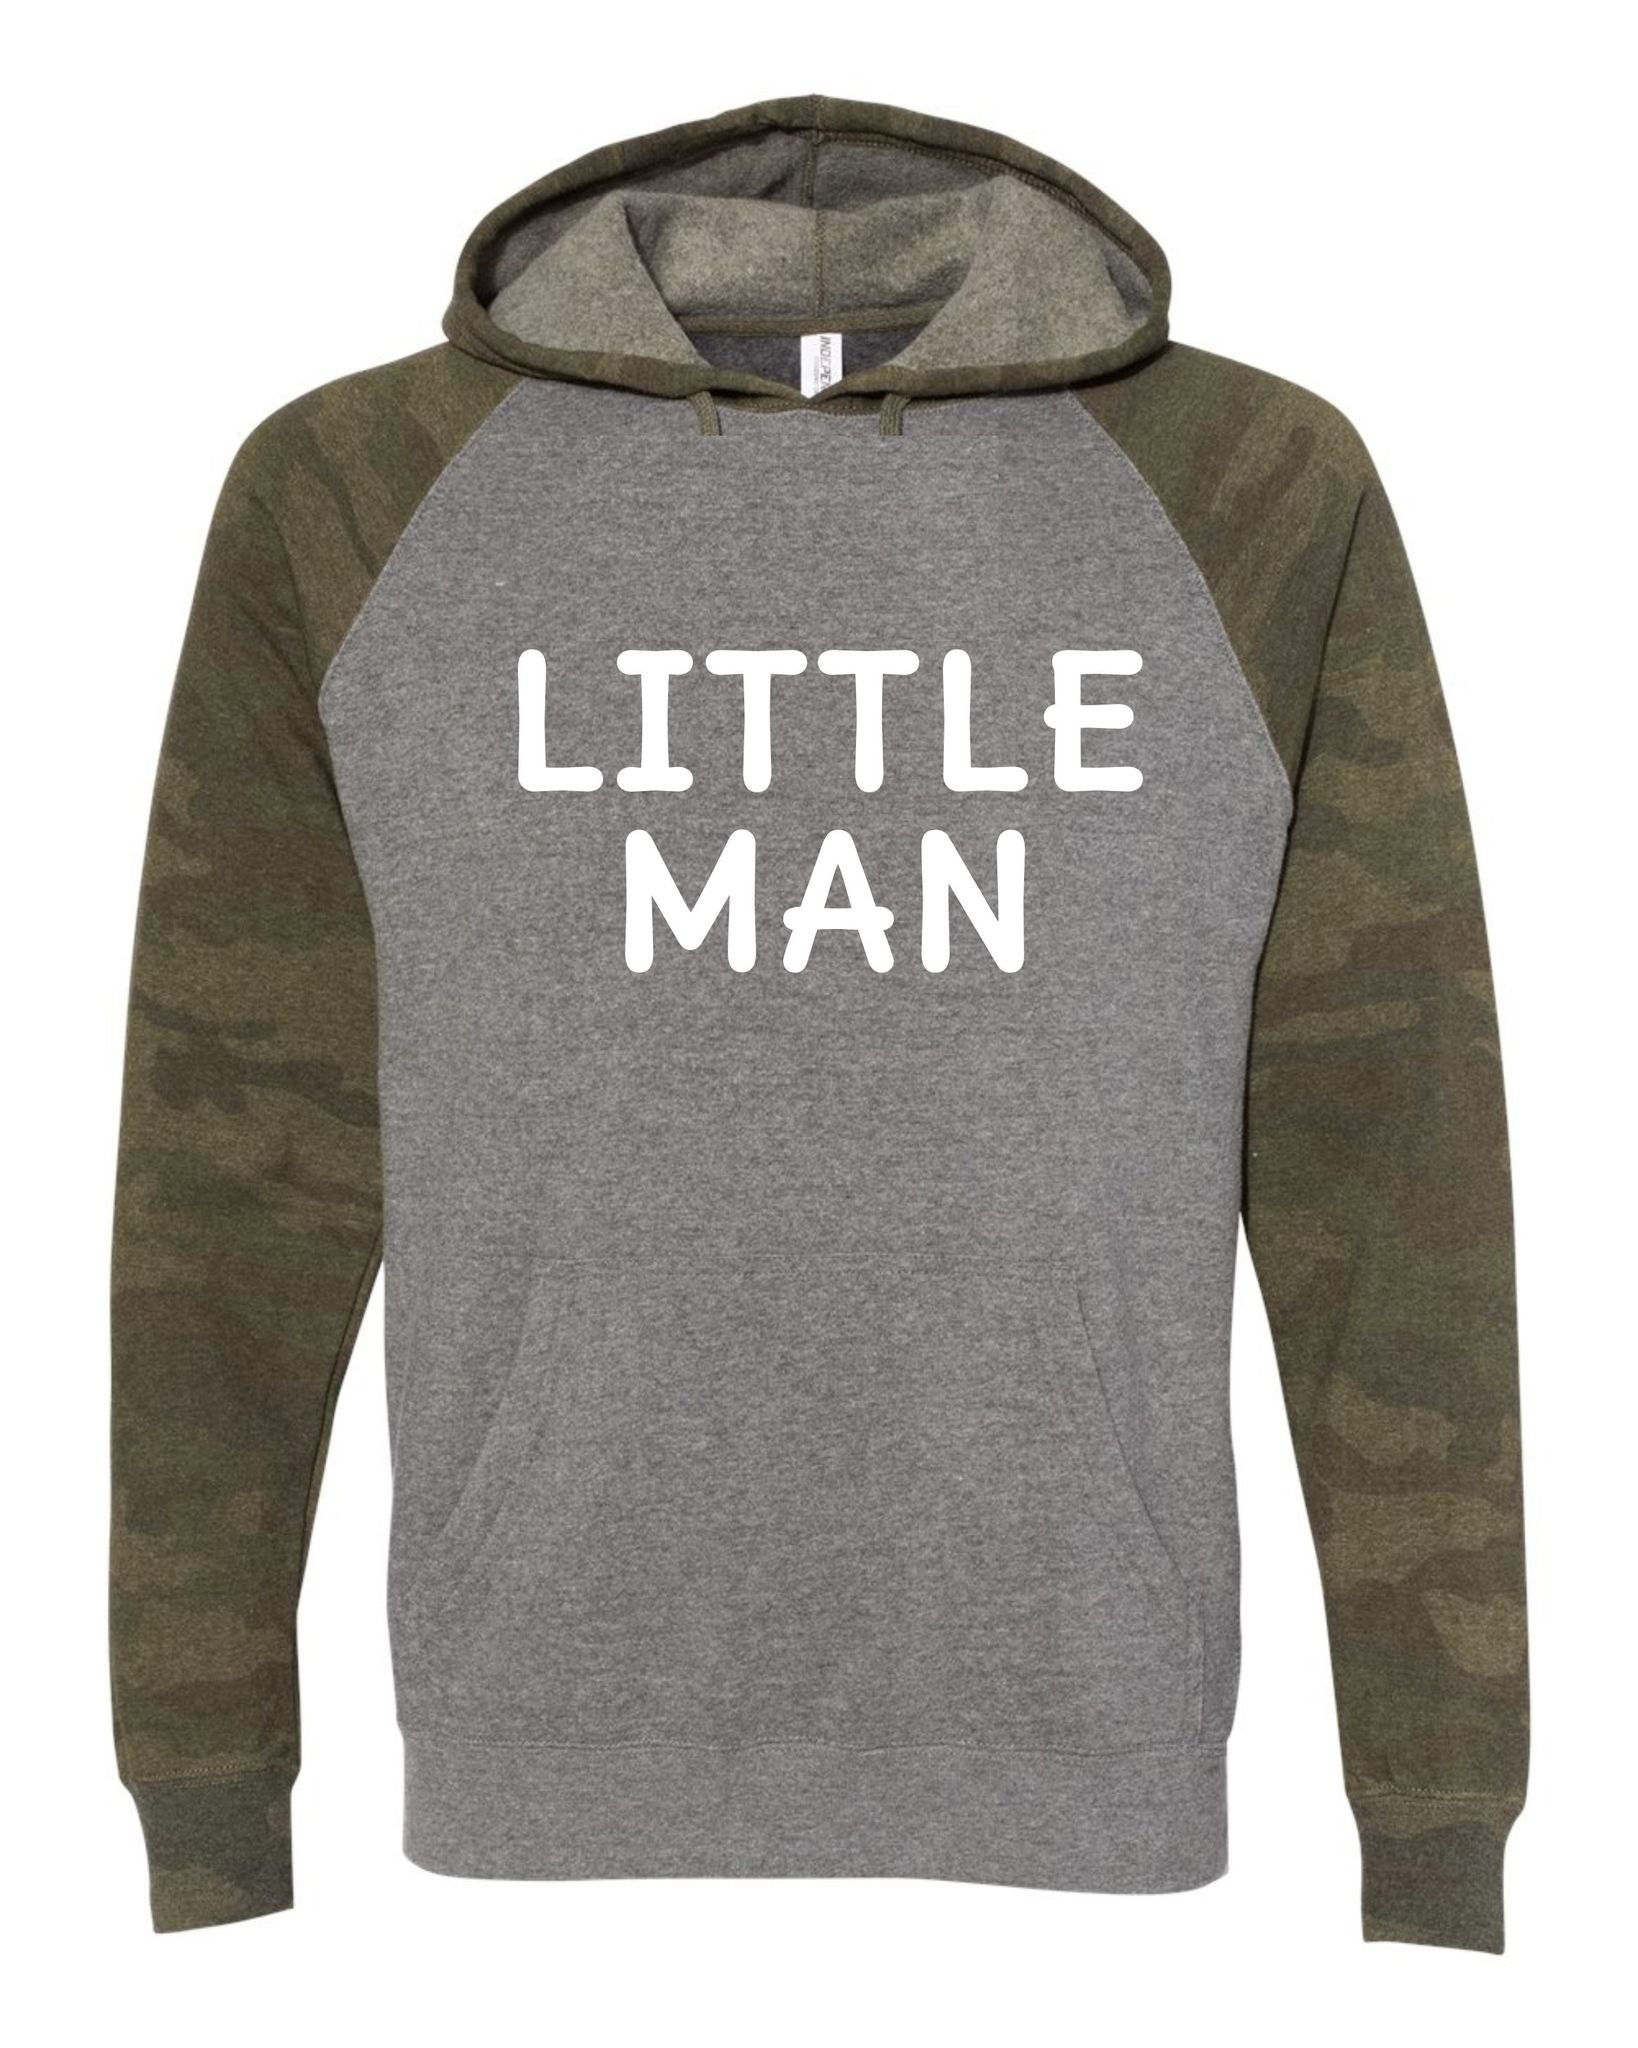 Pre-Order Little Man Sweatshirt